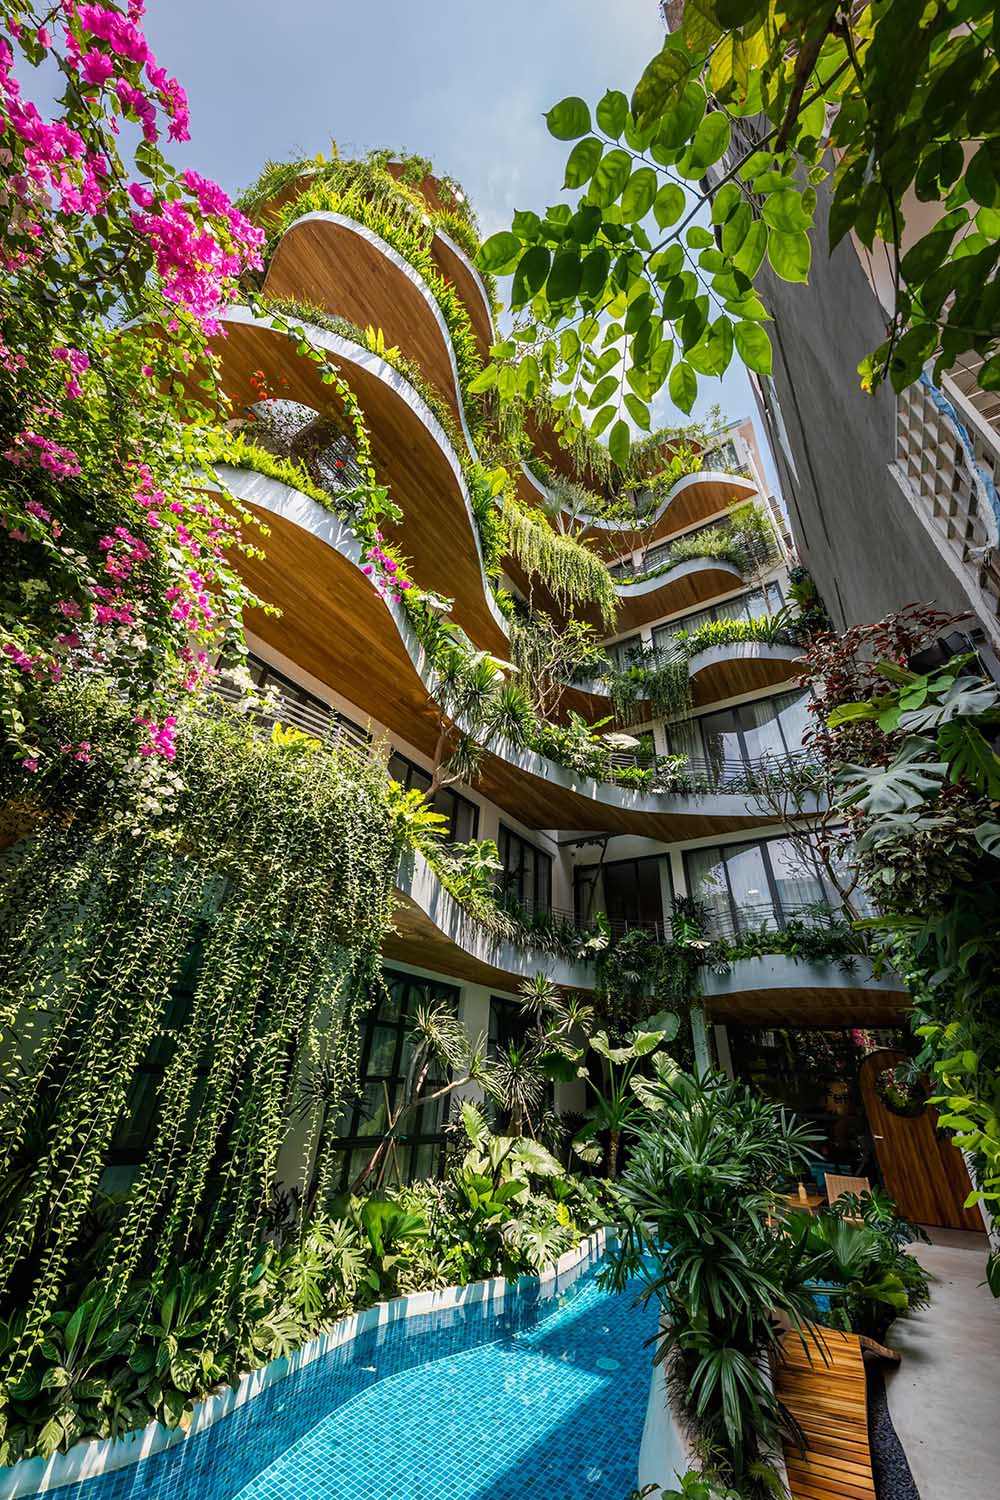 A modern building with curved balconies and overhanging plants.